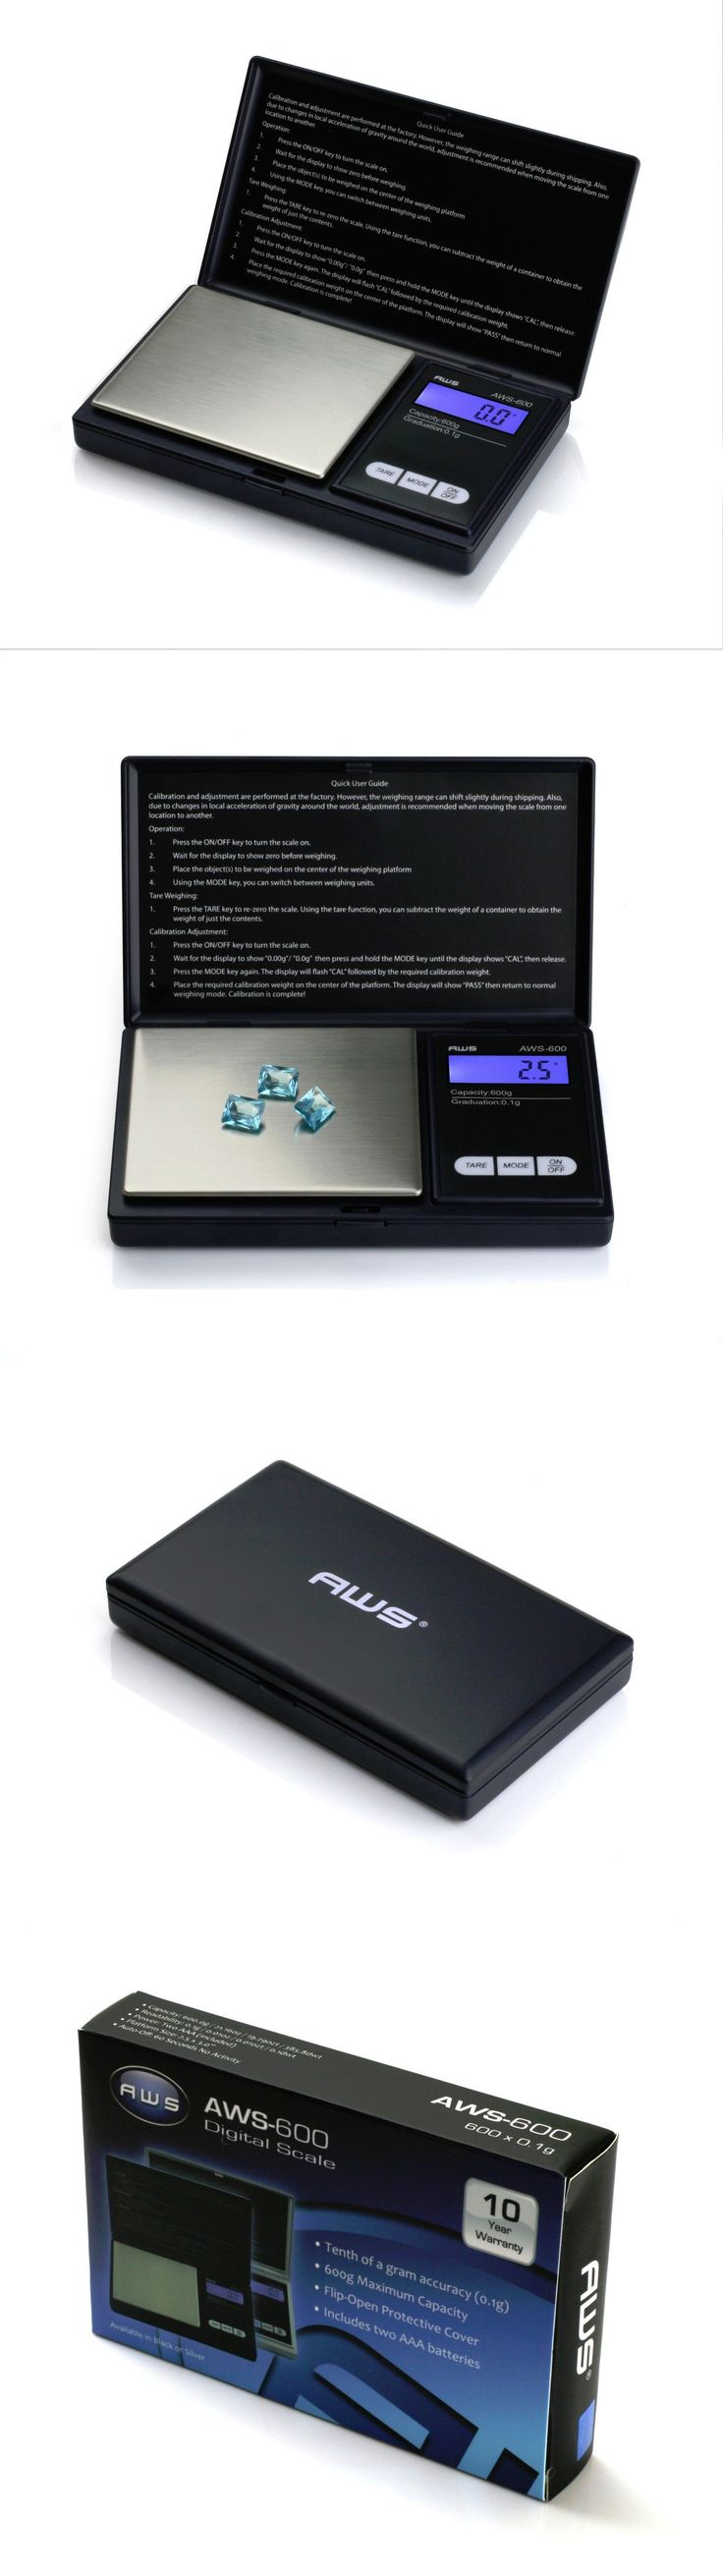 Pocket Digital Scales: Wholesale Lot Of 25 Aws 600G Gold Silver Jewelry Coin Pocket Digital Scale Grams BUY IT NOW ONLY: $174.75